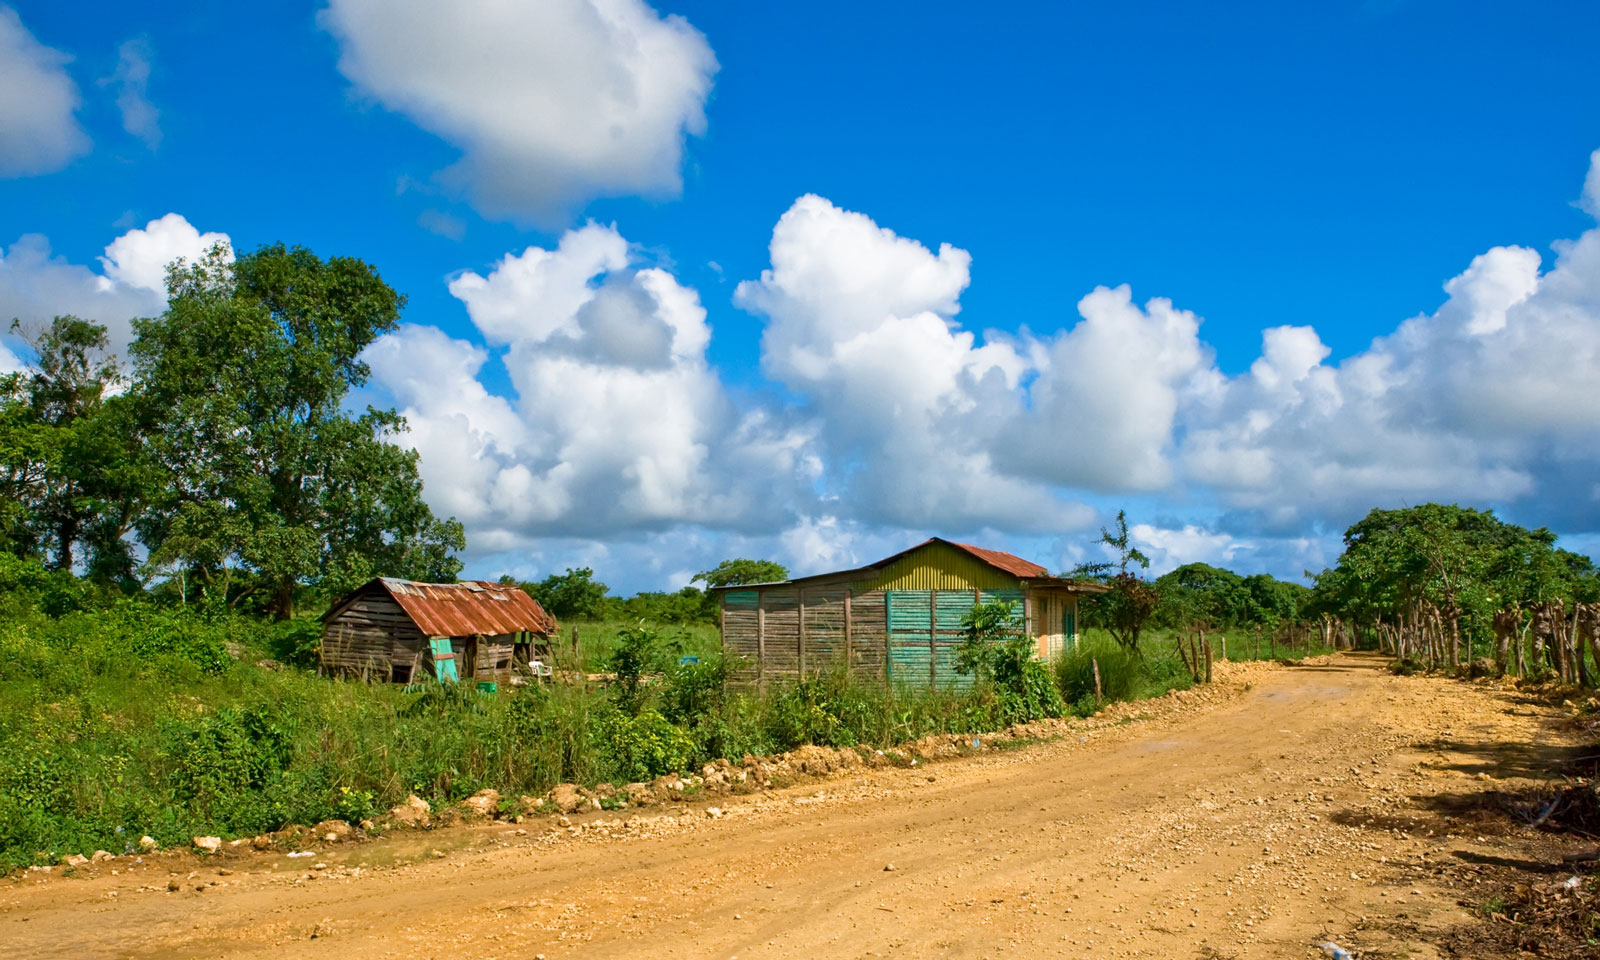 Two small homes near a dirt road